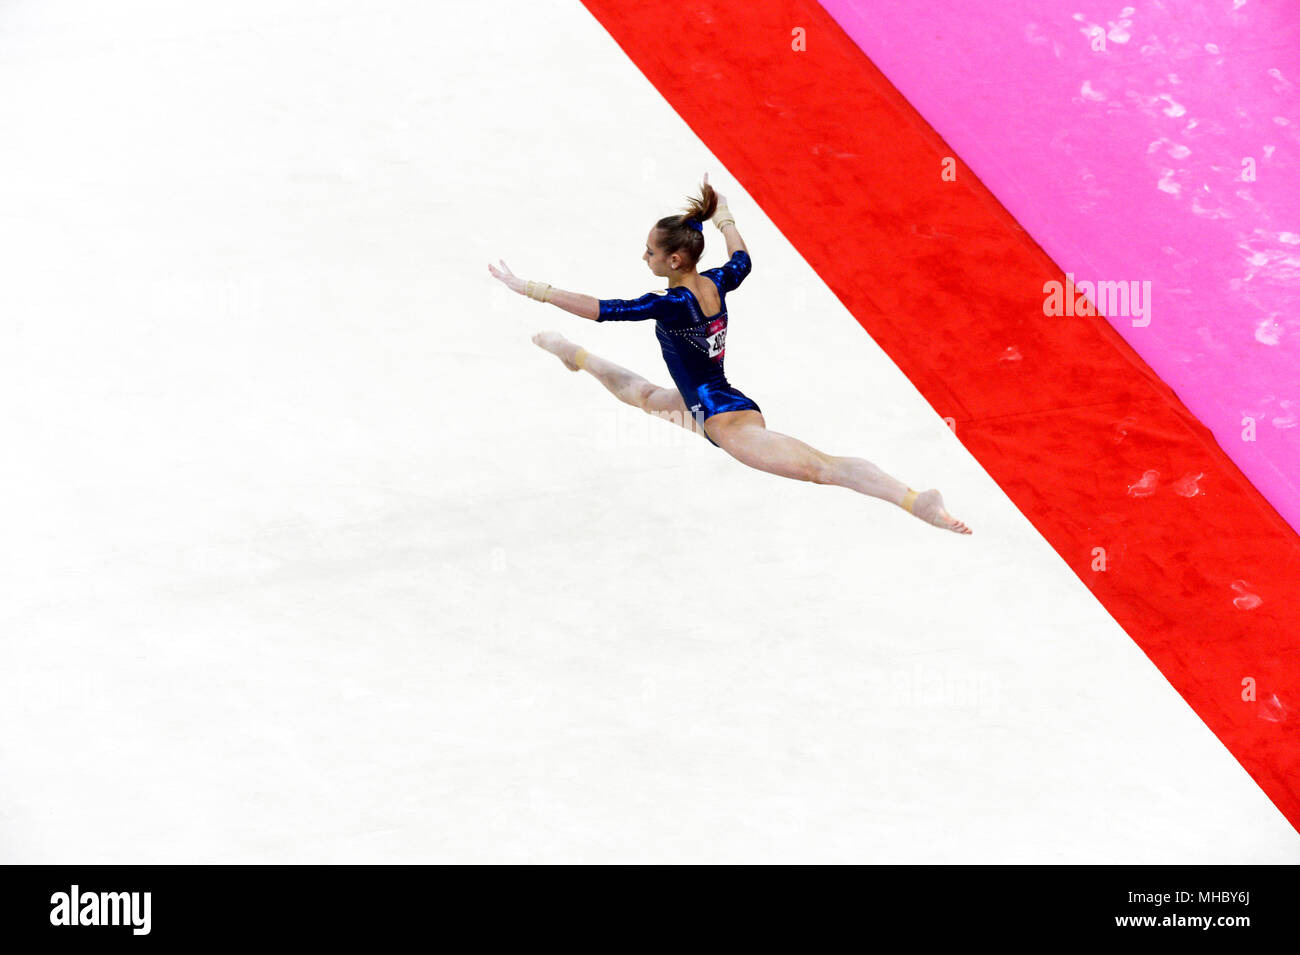 Victoria Komova of Russia performs her floor exercise during the Women's All Around Gymnastics competition,  in which she won the silver medal. - Stock Image